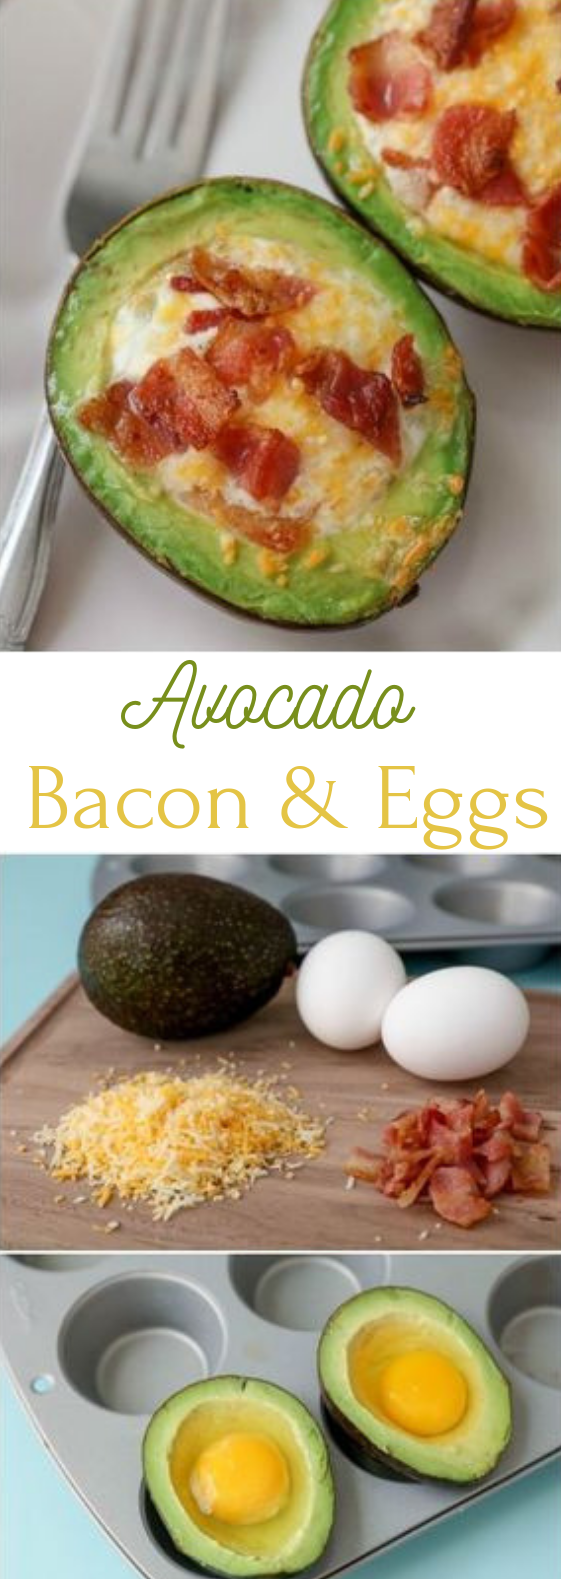 AVOCADO BACON AND EGGS #egg #healthyrecipe